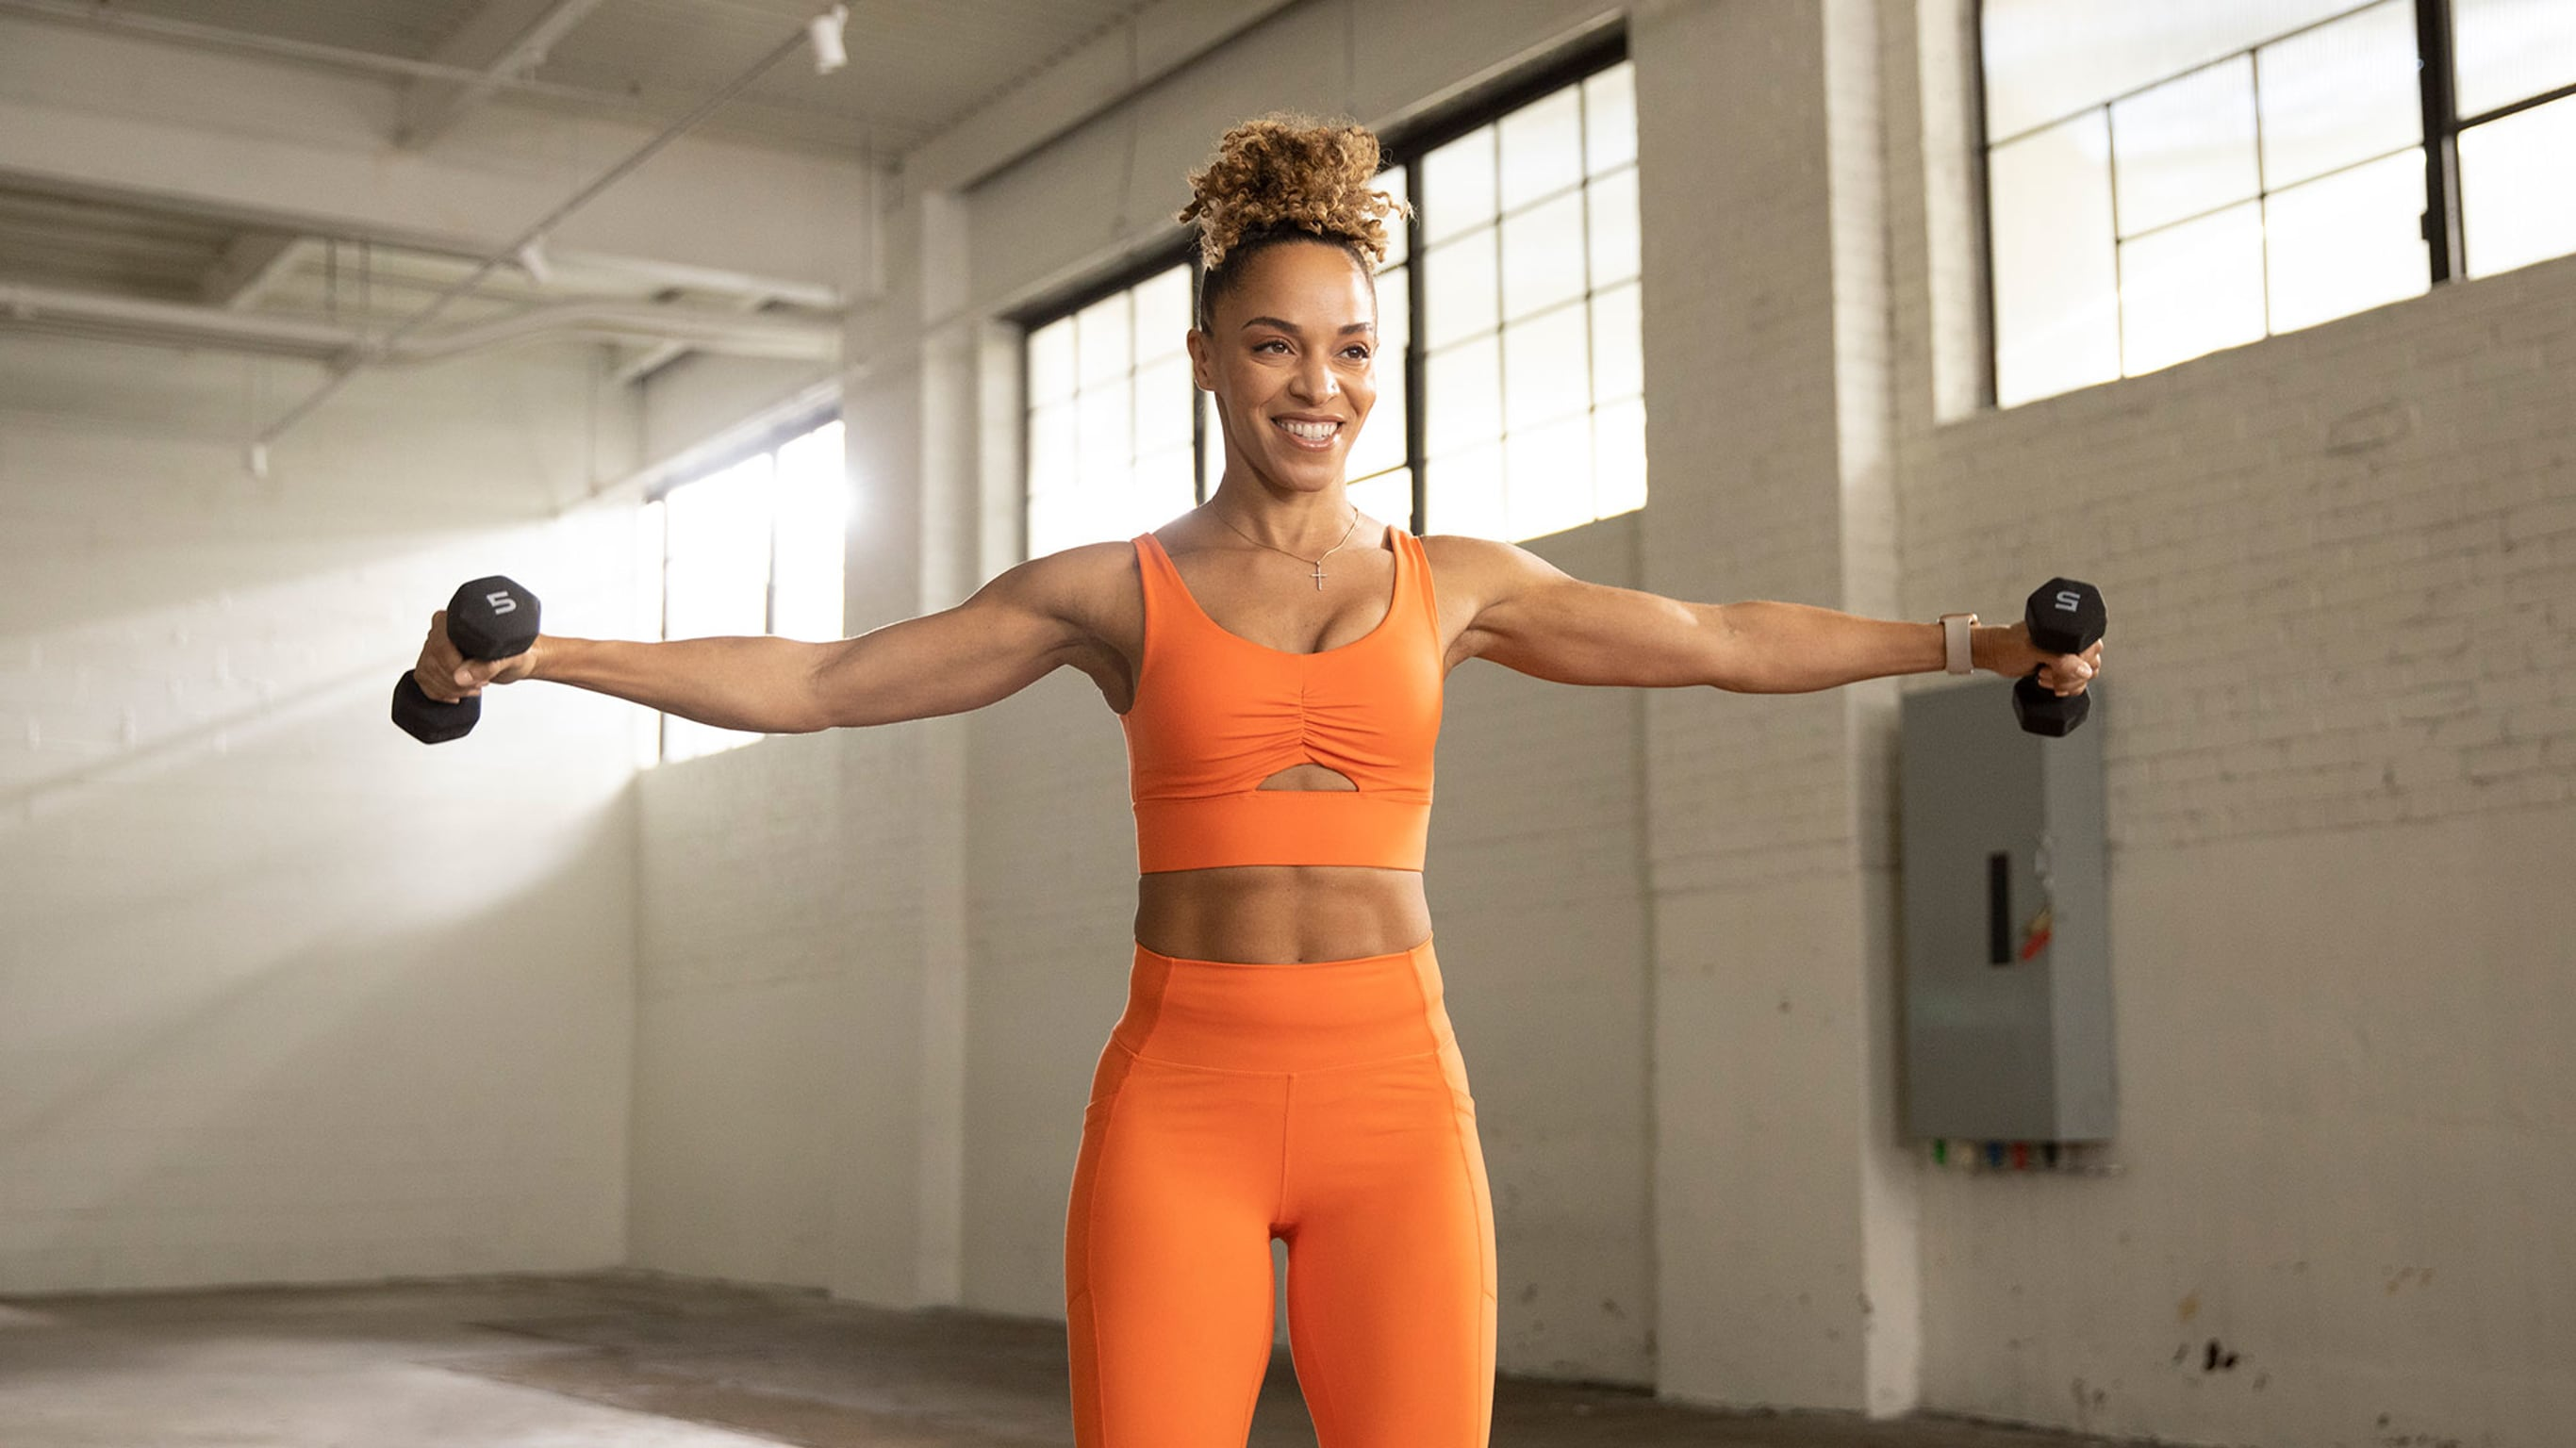 A woman in orange workout gear performing a lateral raise with dumbbells.